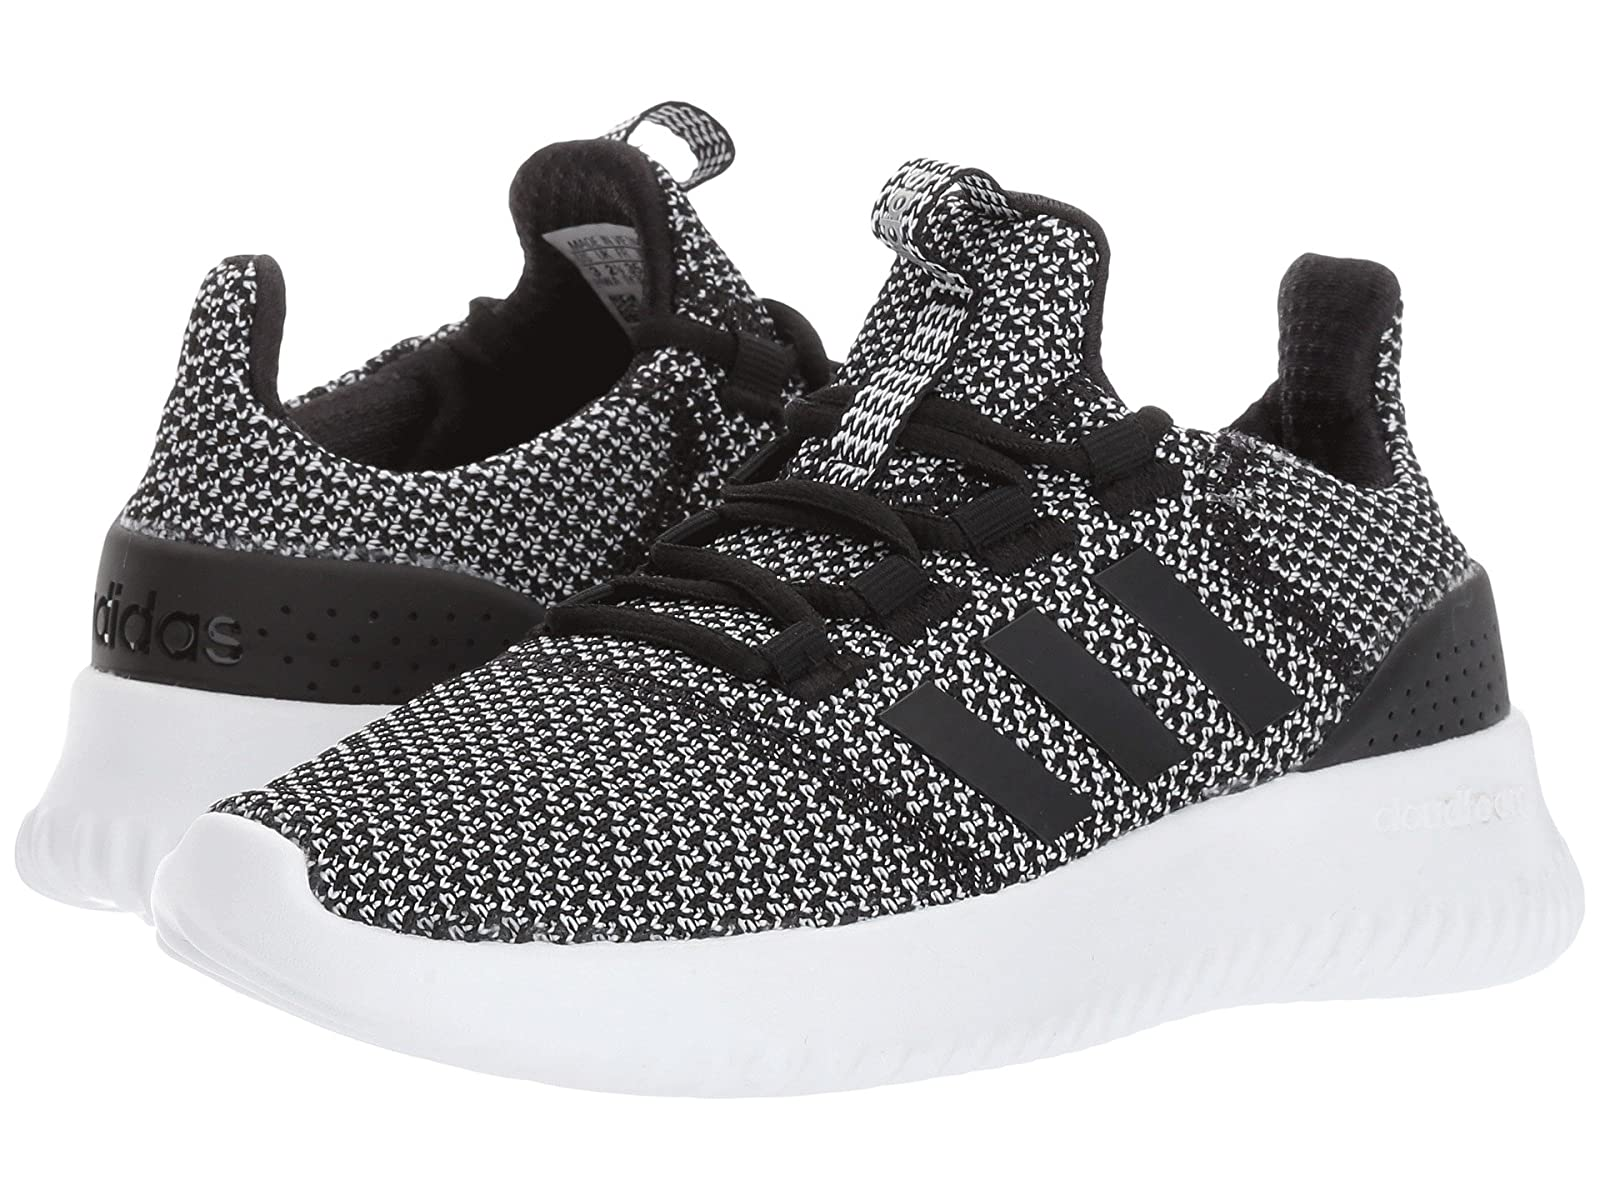 adidas Kids Cloudfoam Ultimate (Little Kid/Big Kid)Stylish and characteristic shoes